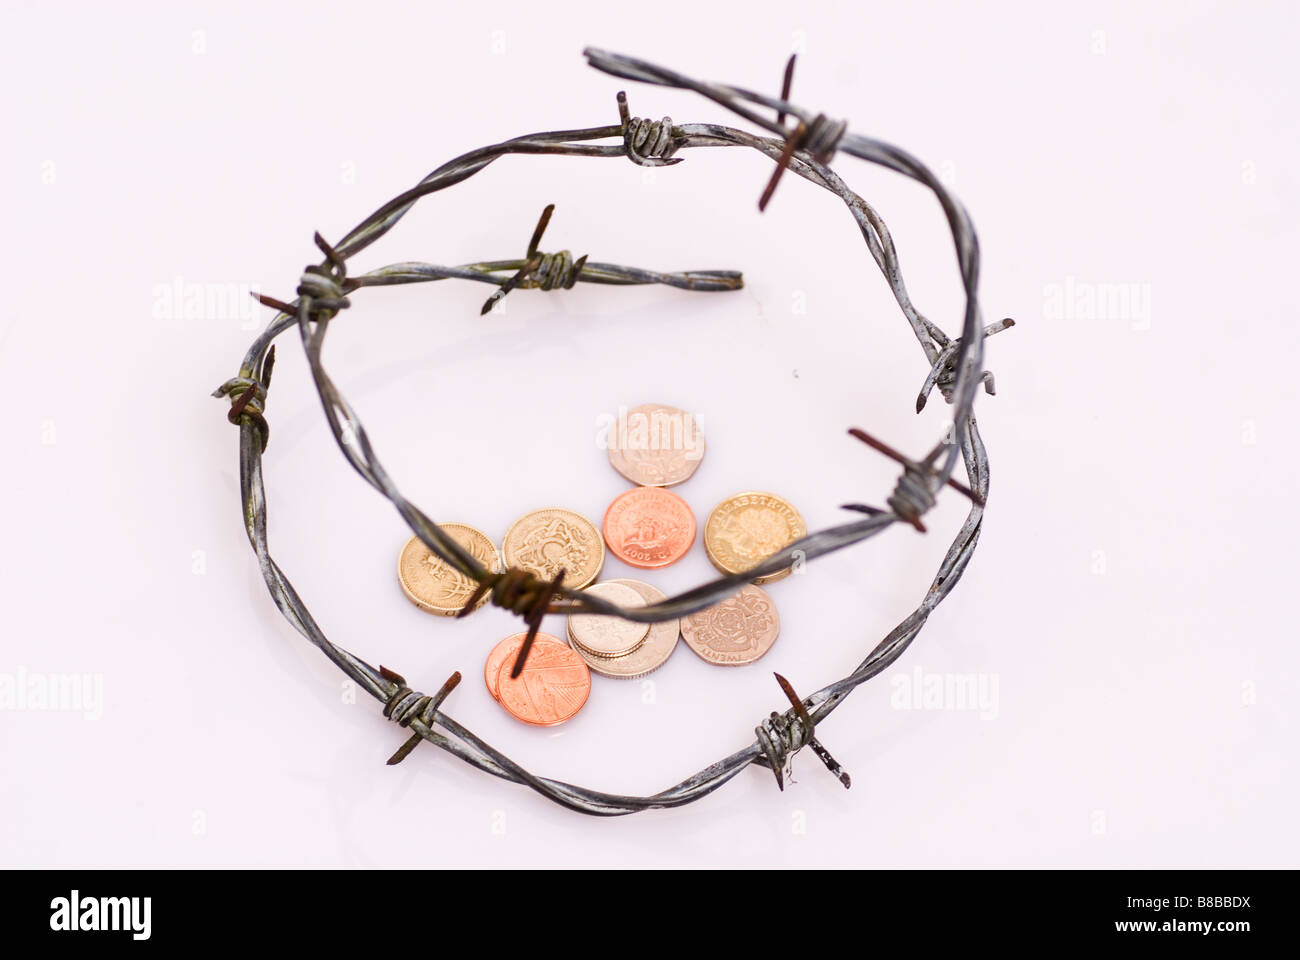 Barbed wire around money coins - Stock Image